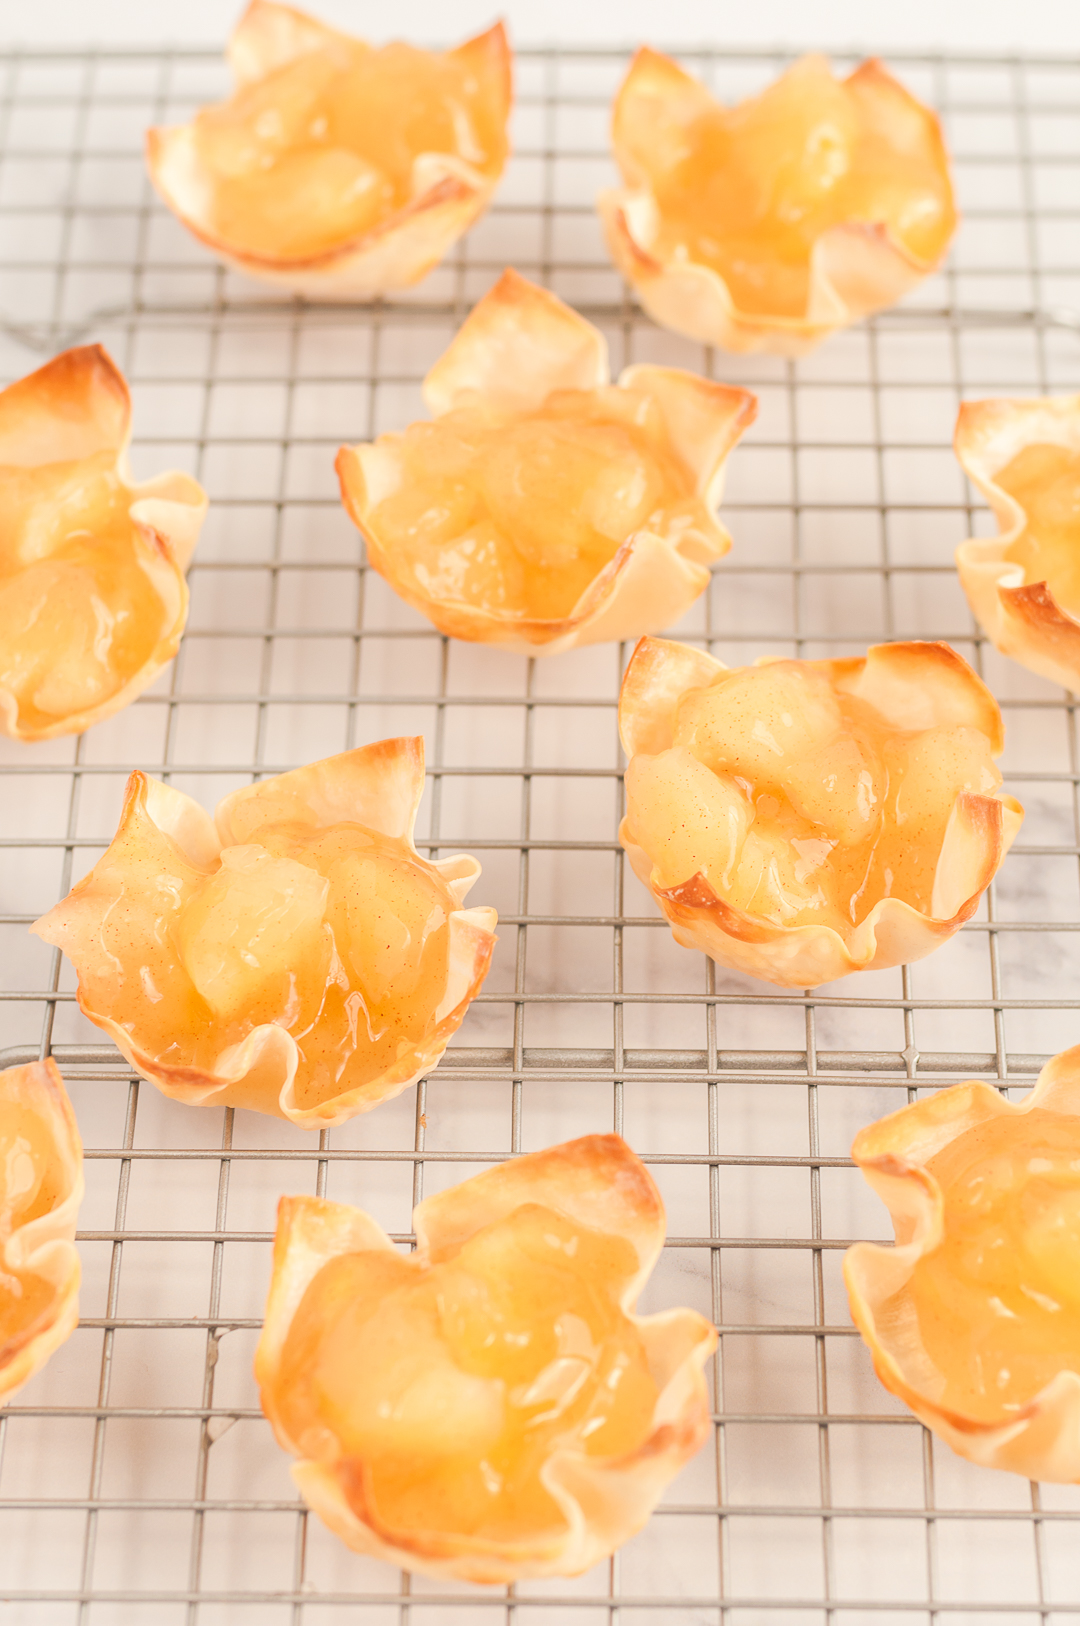 Mini Pies in Wonton Wrappers with Apple Pie Filling inside